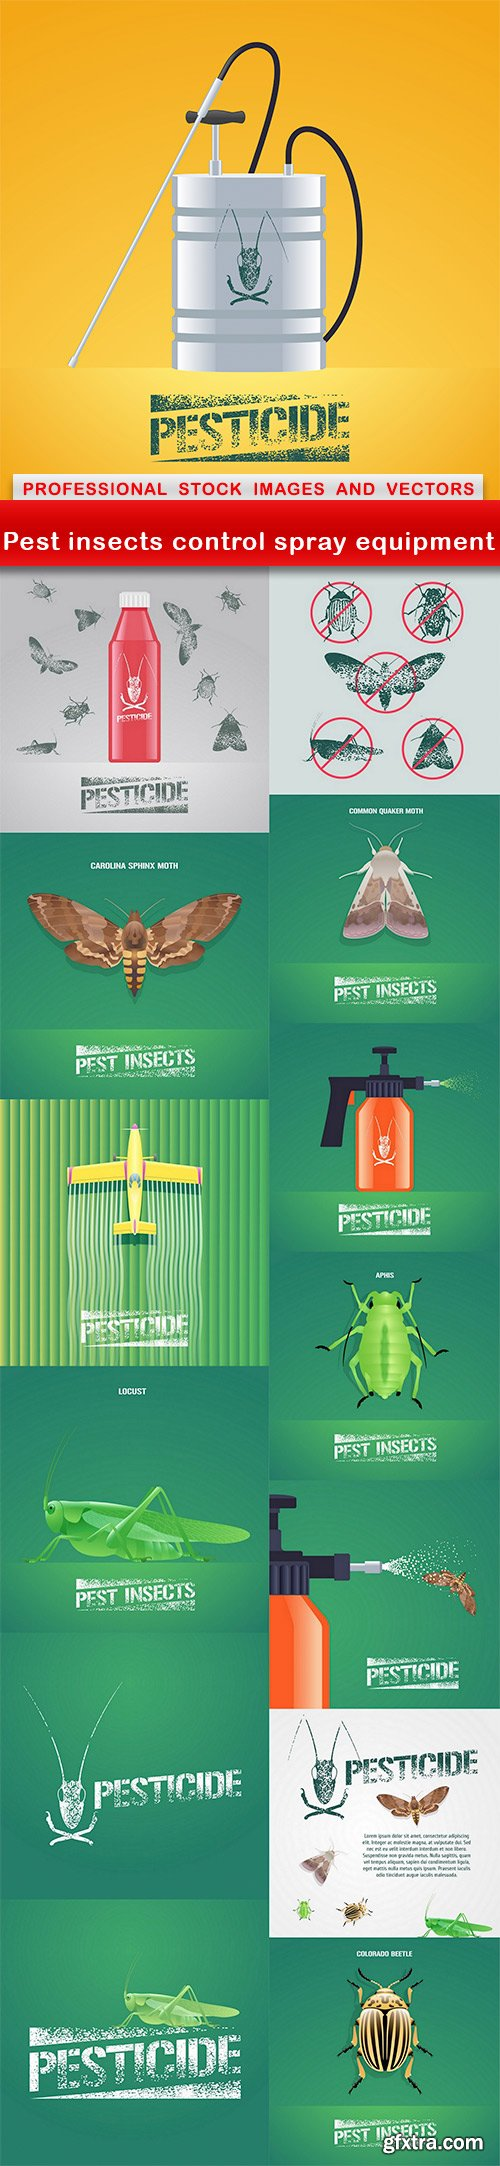 Pest insects control spray equipment - 14 EPS